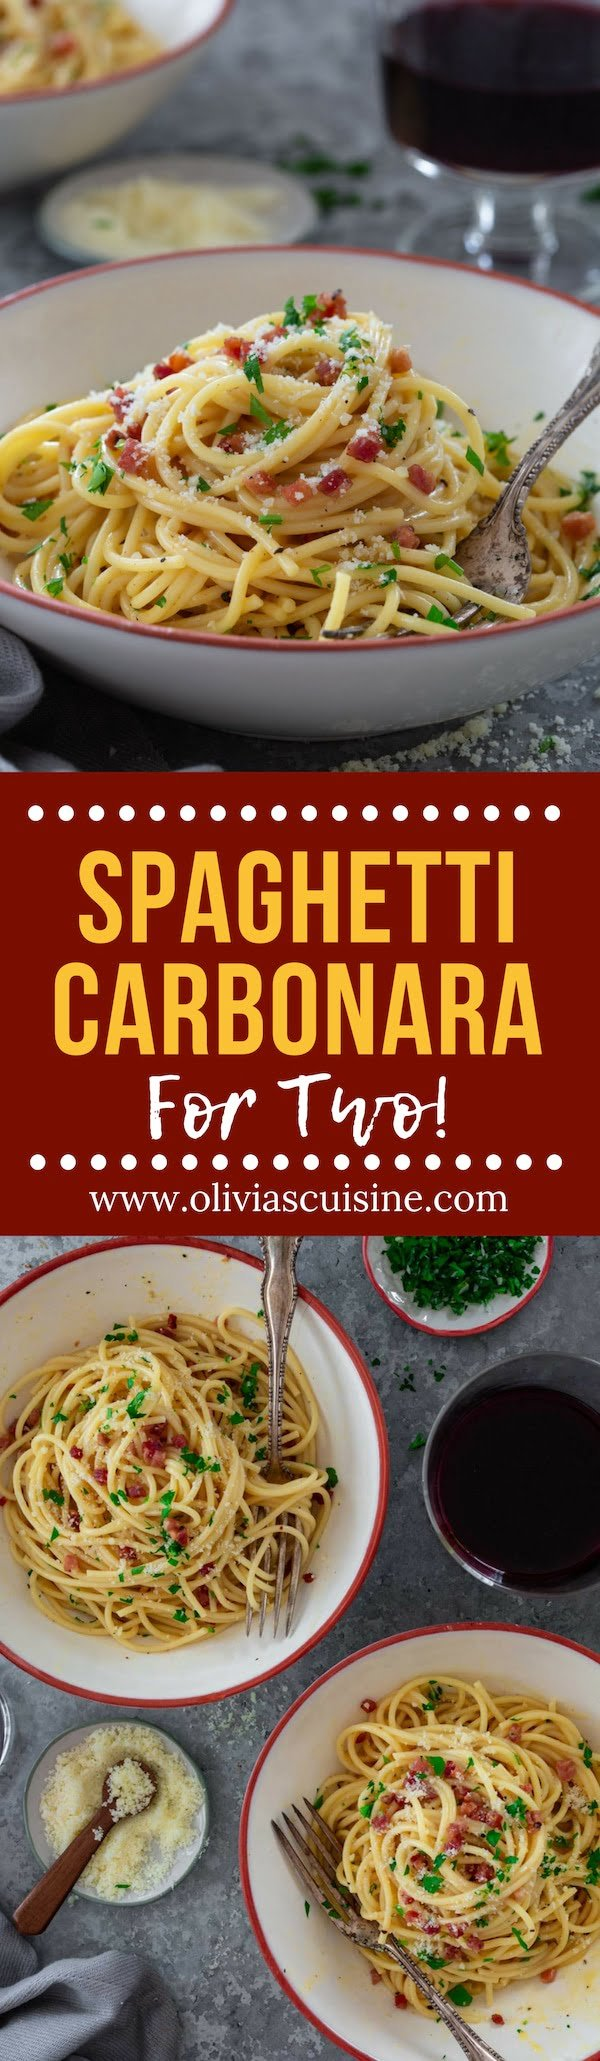 Spaghetti alla Carbonara (for Two!) | www.oliviascuisine.com | Italian Spaghetti alla Carbonara is a pasta dish that everybody should know how to make at home! Follow my tips and you'll only need a few staple ingredients to make the easiest, creamiest, cheesiest Carbonara of your life. No cream necessary! (Recipe and food photography by @oliviascuisine.) #pasta #spaghetti #carbonara #spaghetticarbonara